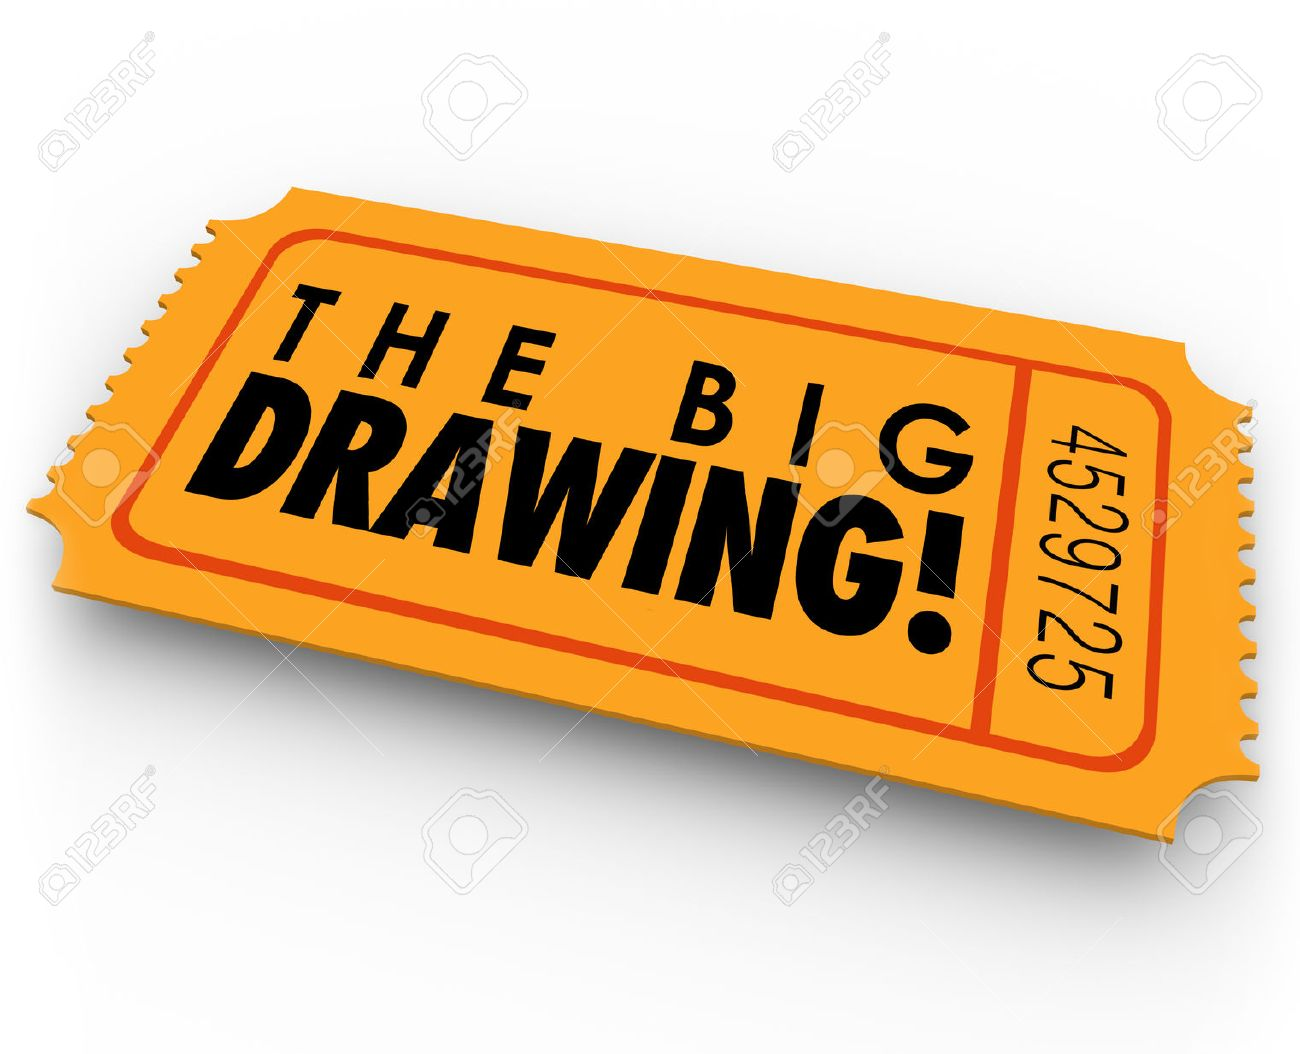 Raffle Stock Vector Illustration And Royalty Free Raffle Clipart raffle: The Big Drawing words on an orange raffle or contest ticket for picking the